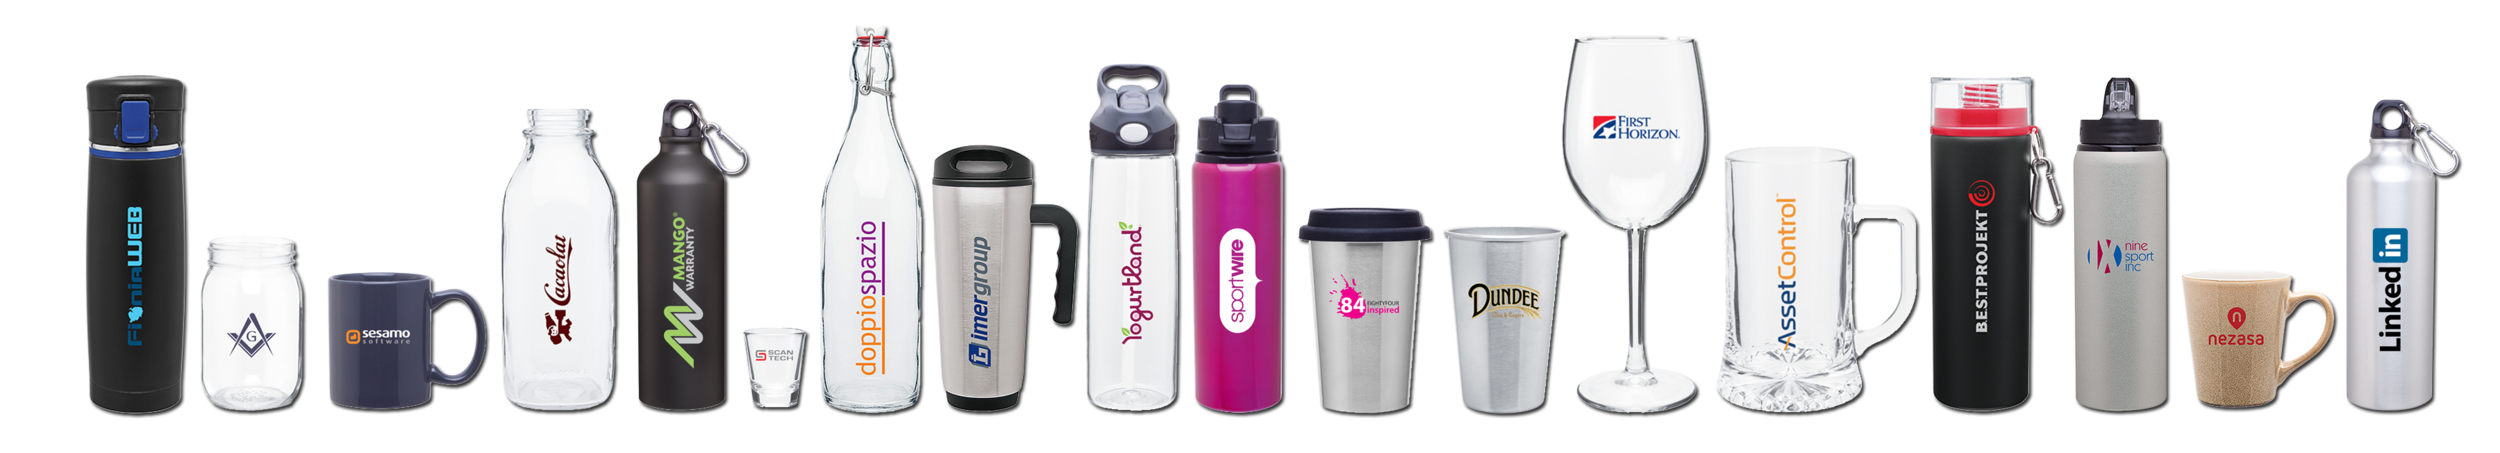 1000s of different styles and types of drinkware- aluminum, ceramic, plastic, steel, glass- all types for all the different needs!